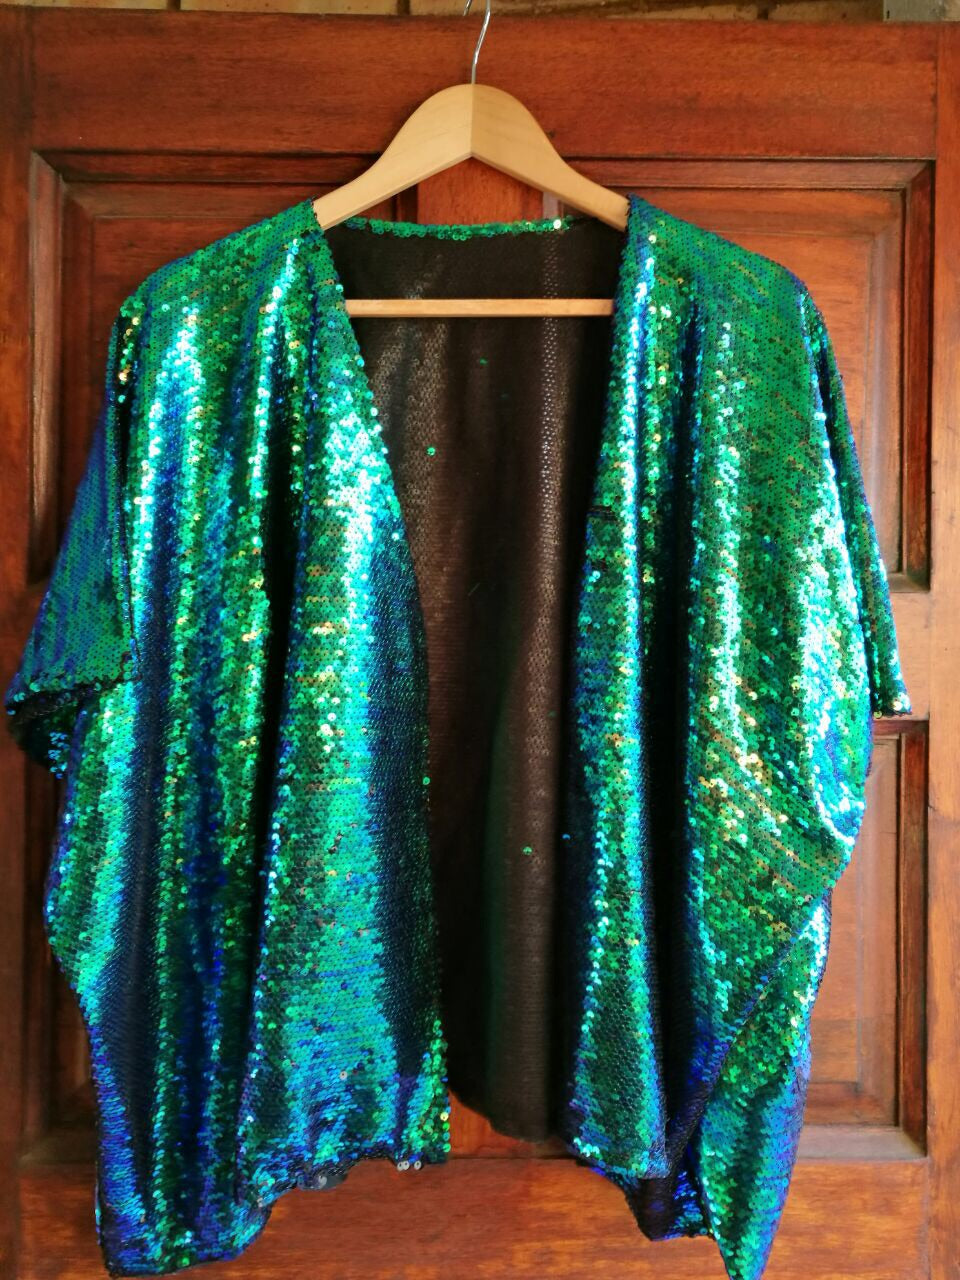 Turquoise to Matt Black full sequined kimono